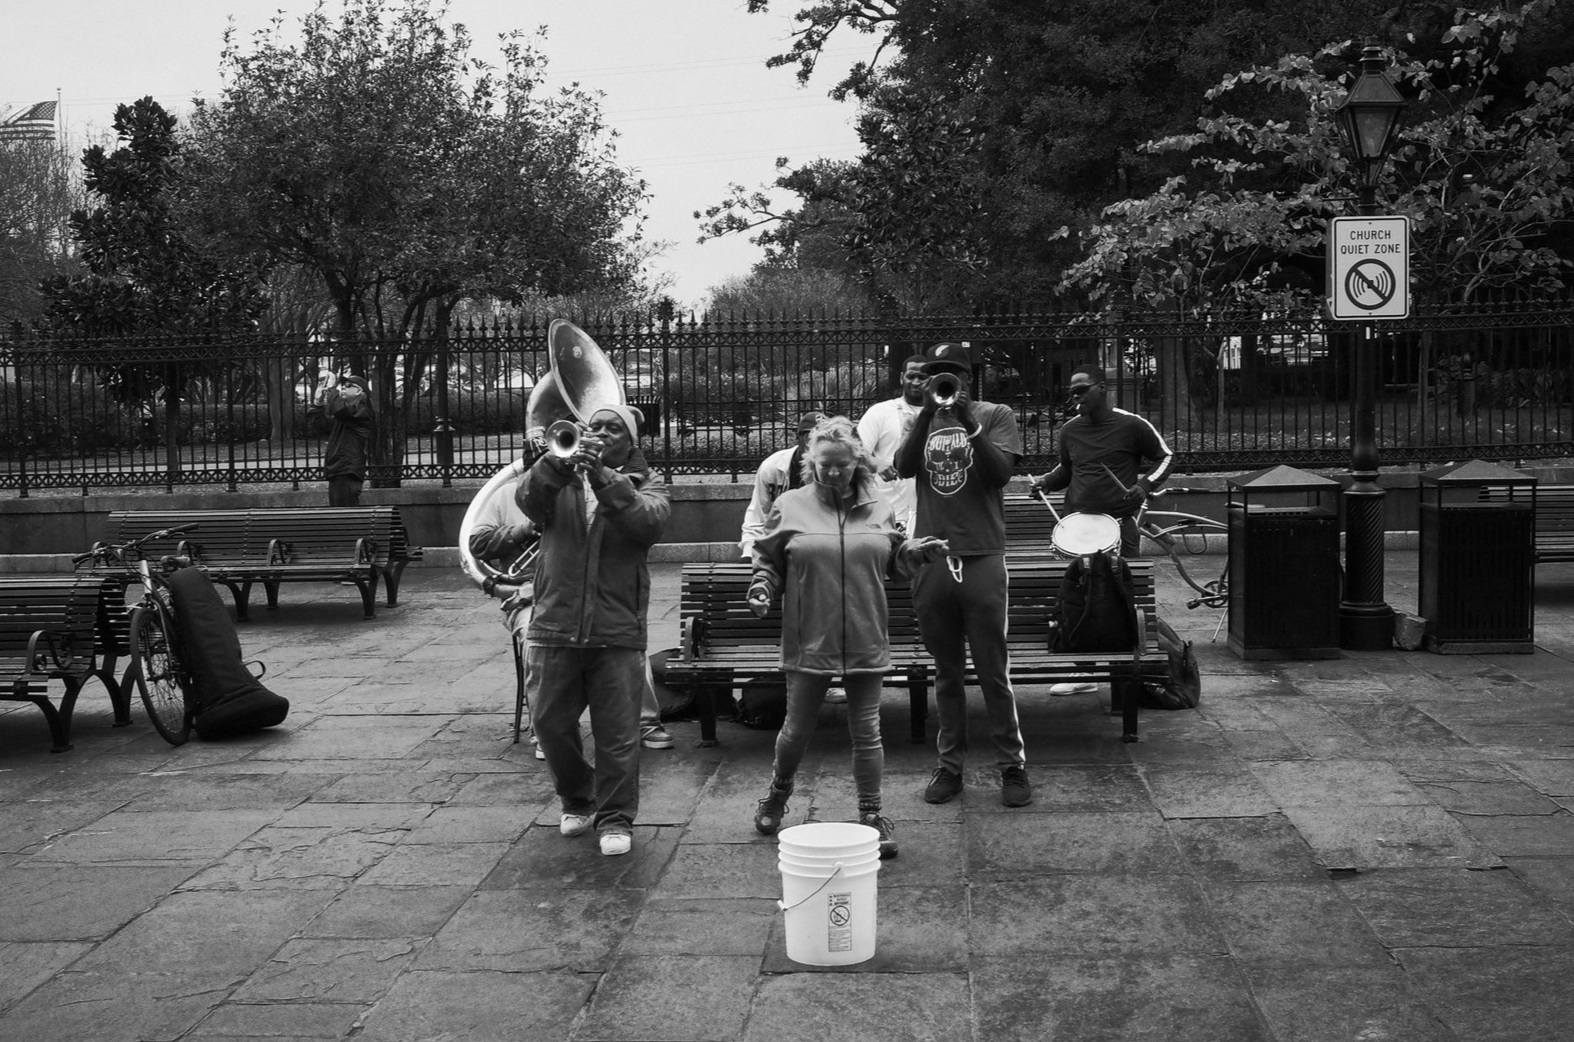 Musicians in Jackson Square, along with a tourist they recruited to participate. New Orleans. November 29, 2018